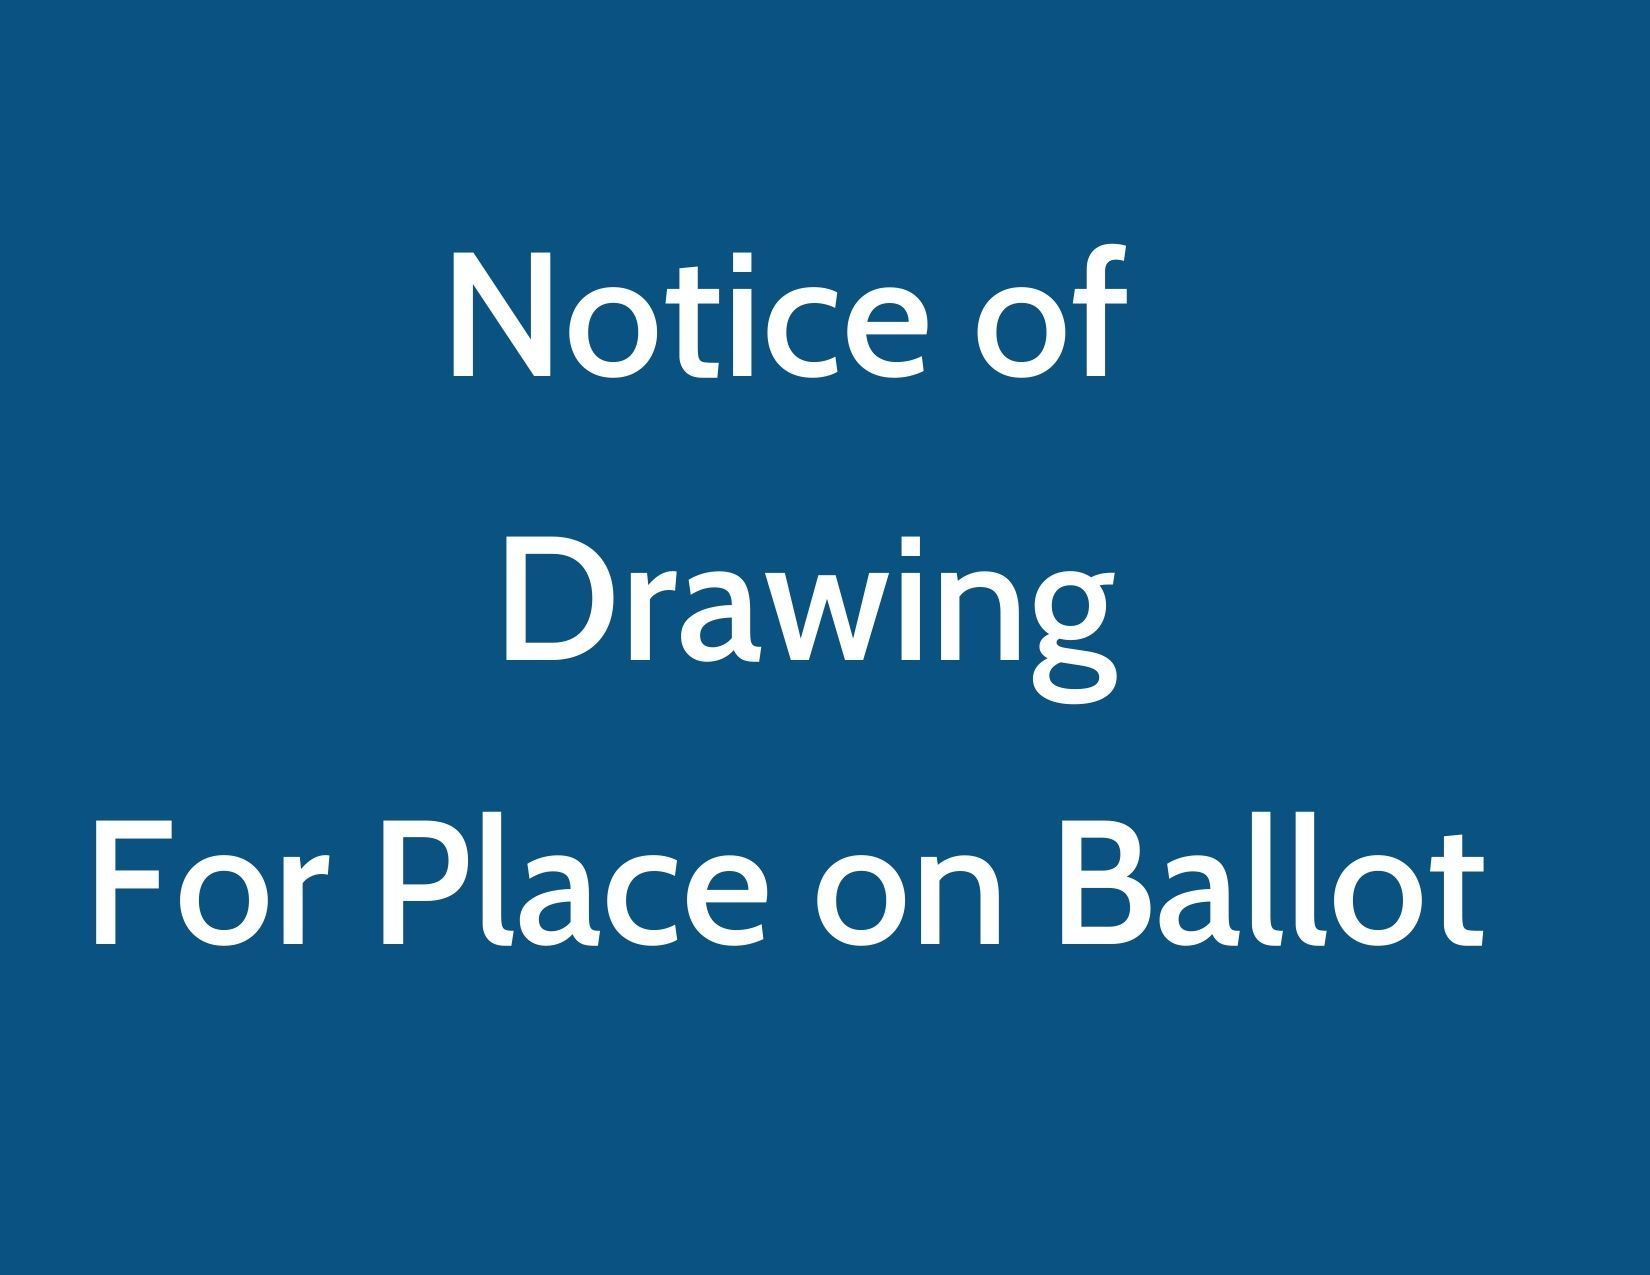 Notice for Ballot Drawing